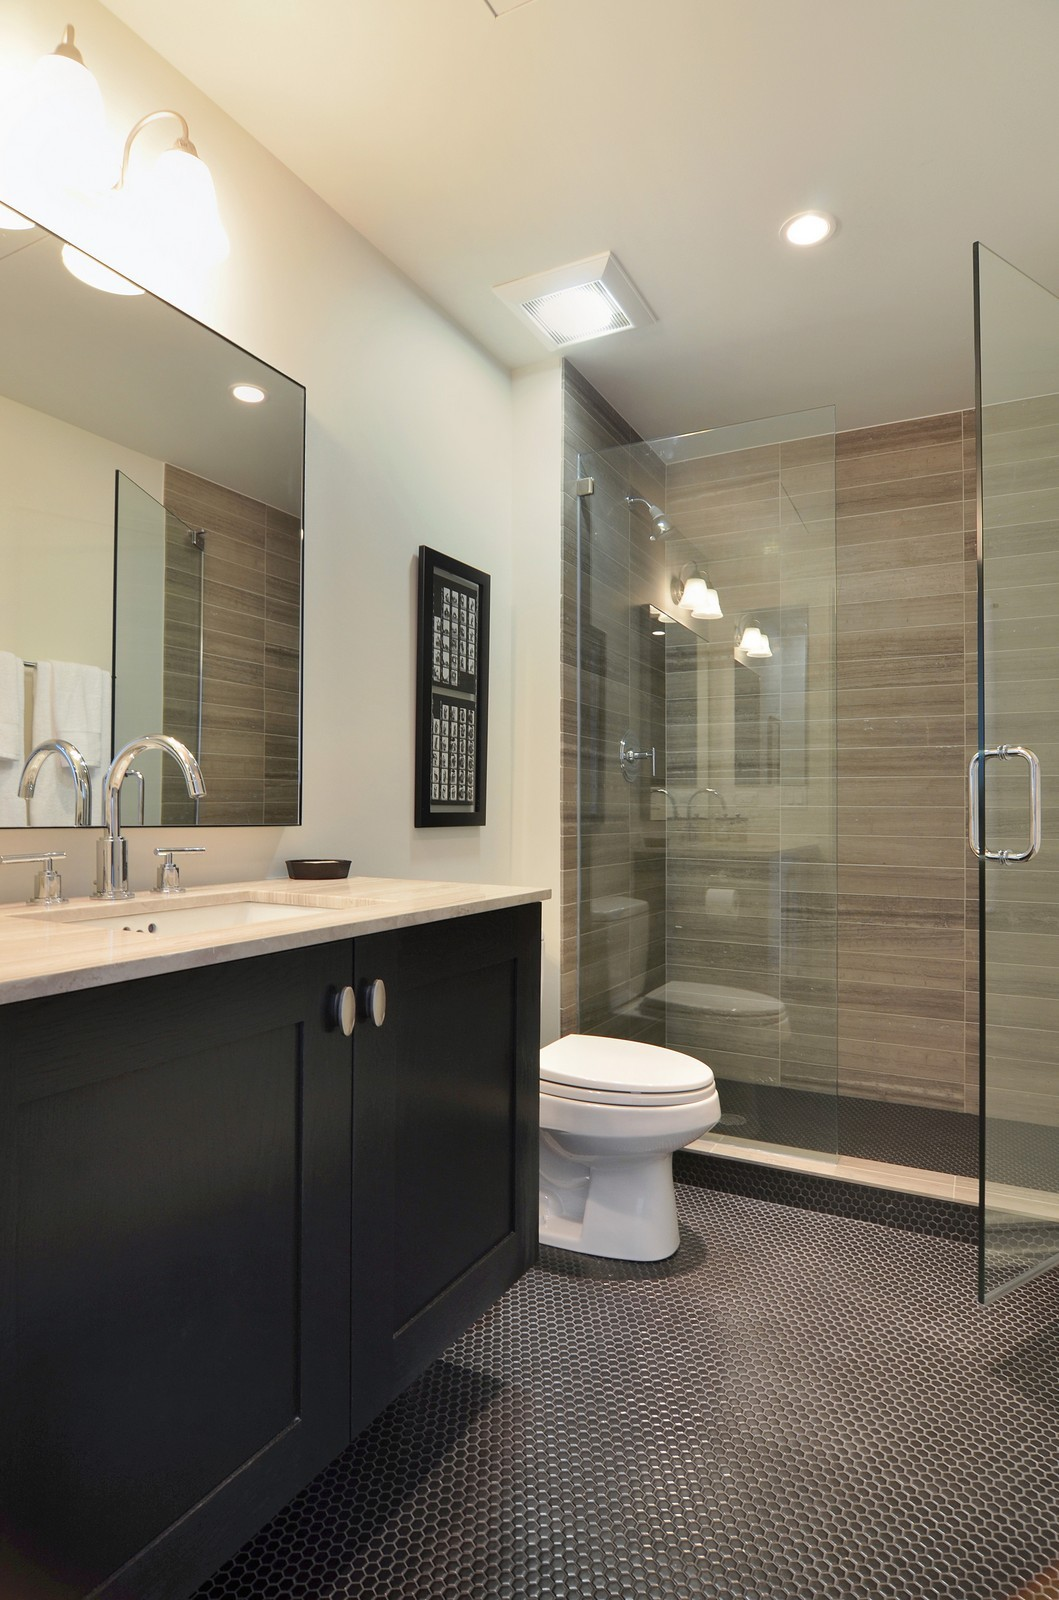 Real Estate Photography - 318 S Michigan Ave, Unit 300, Chicago, IL, 60604 - 2nd Bathroom